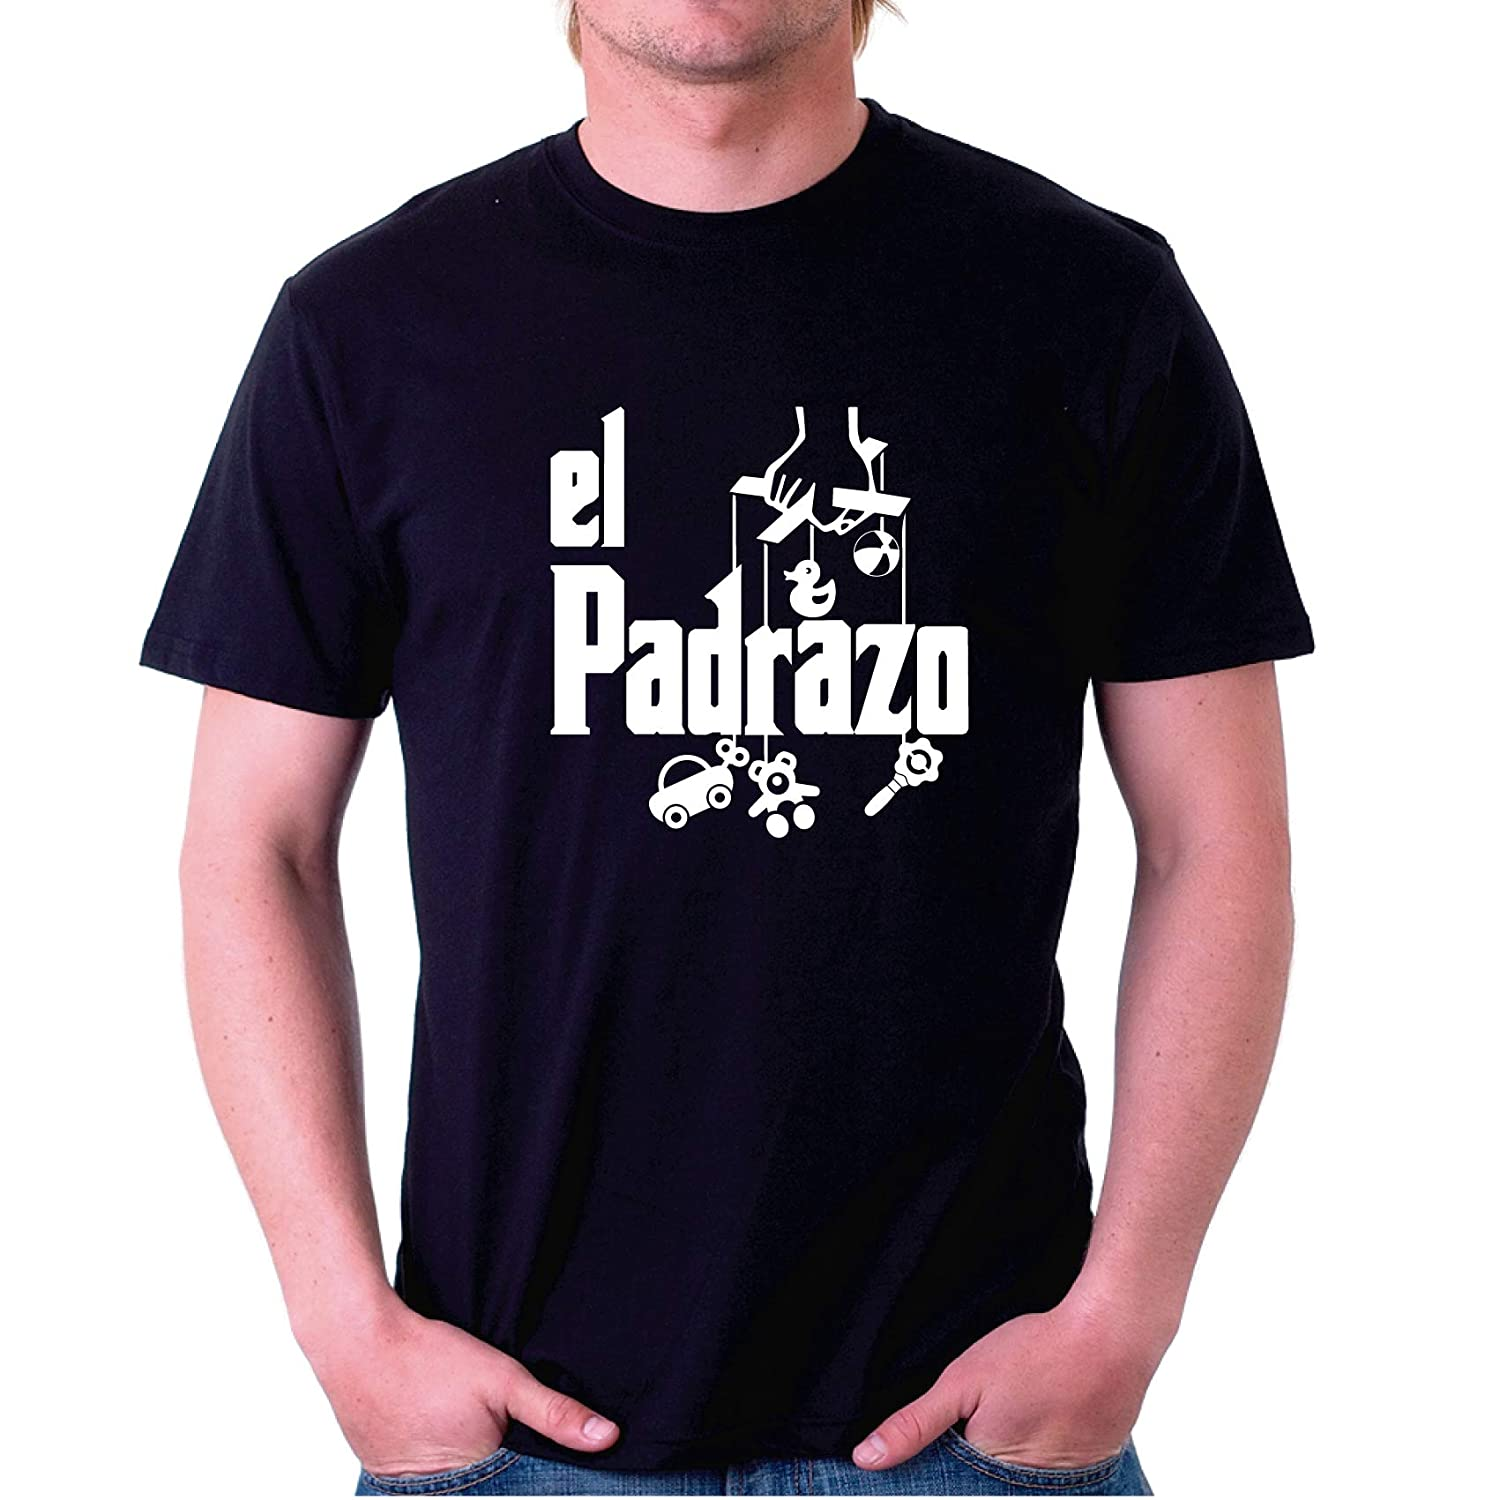 Video, S Custom Vinyl Camiseta Dia del Padre El padrazo